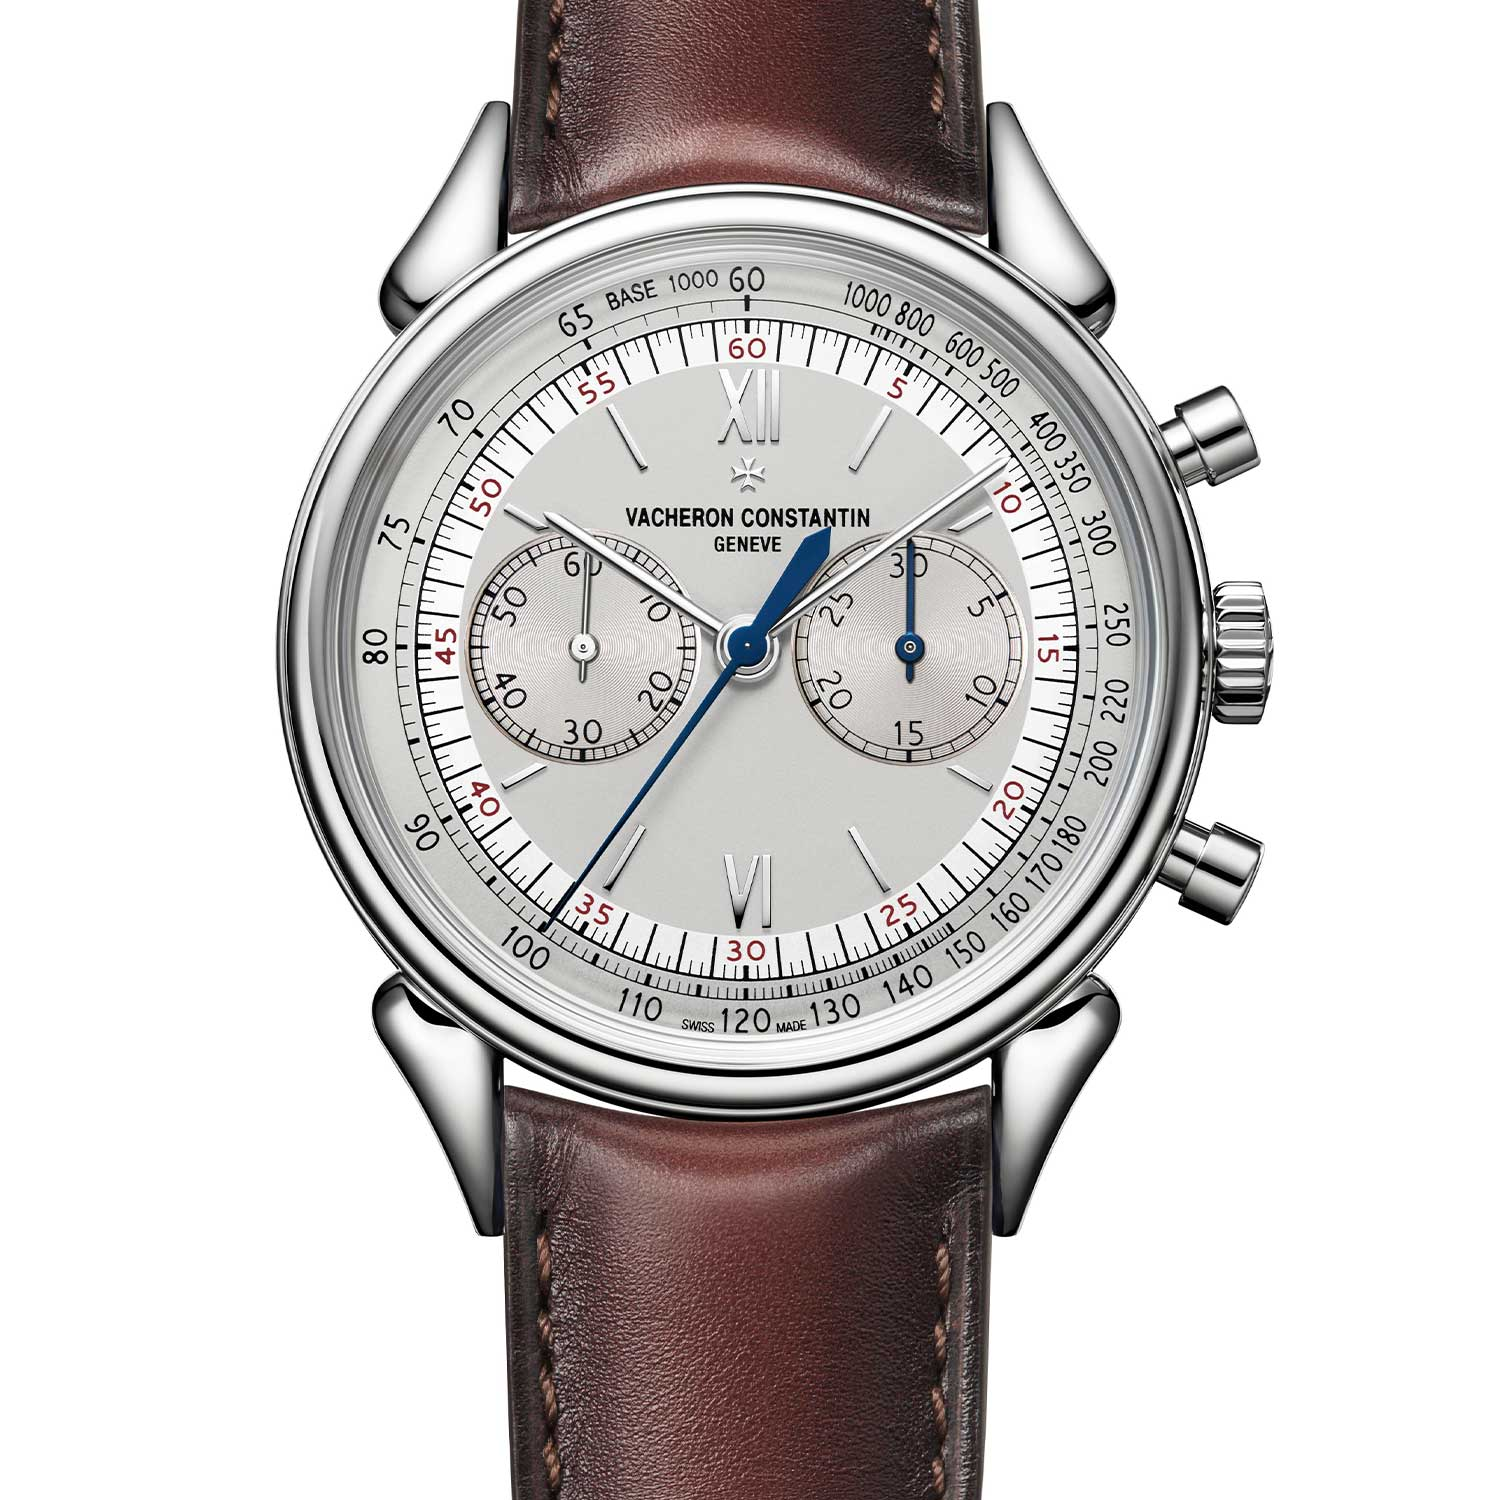 Vacheron Constantin Historiques Cornes de vache 1955 ref. 5000H/000A-B582 in stainless steel was launched in 2019, the watch comes fitted on a dark brown calf leather with Serapian patina